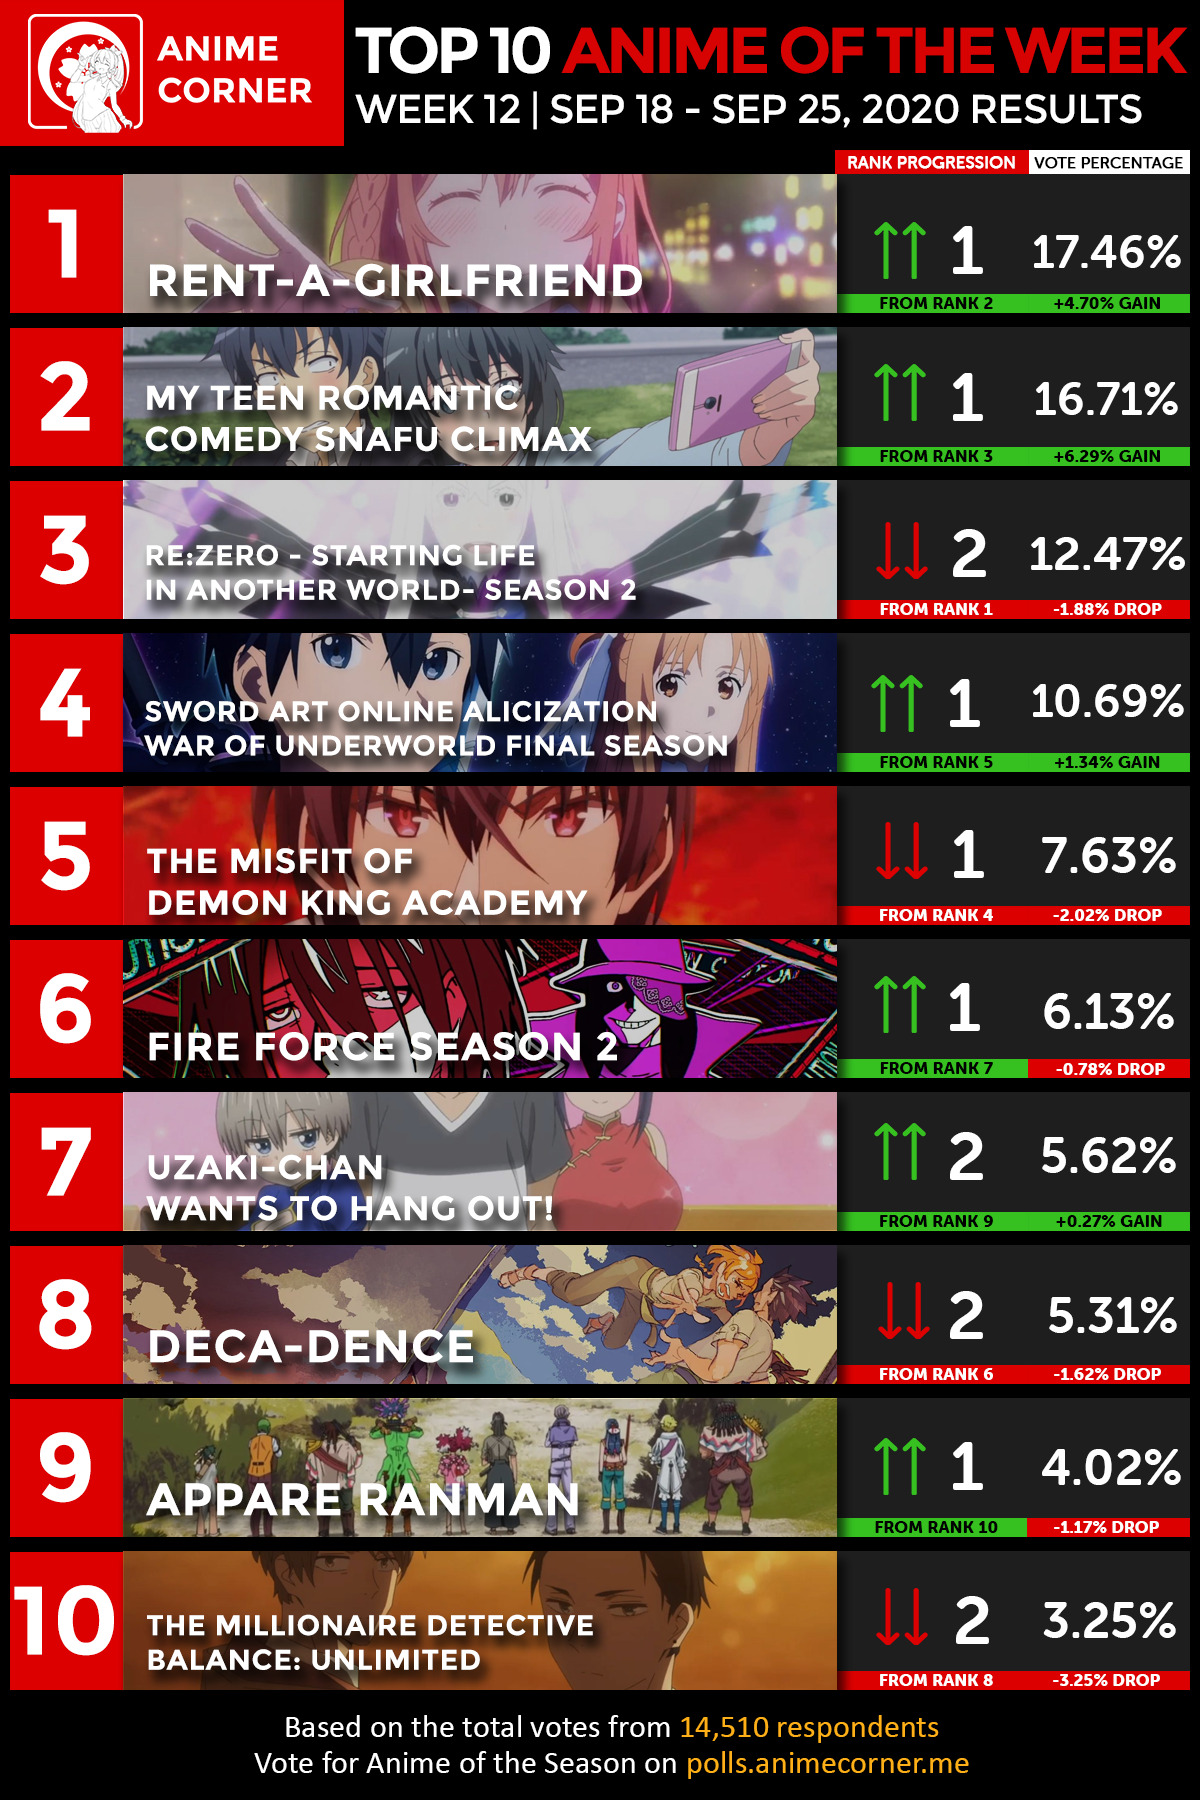 Anime Rankings - Anime Corner Week 12 results